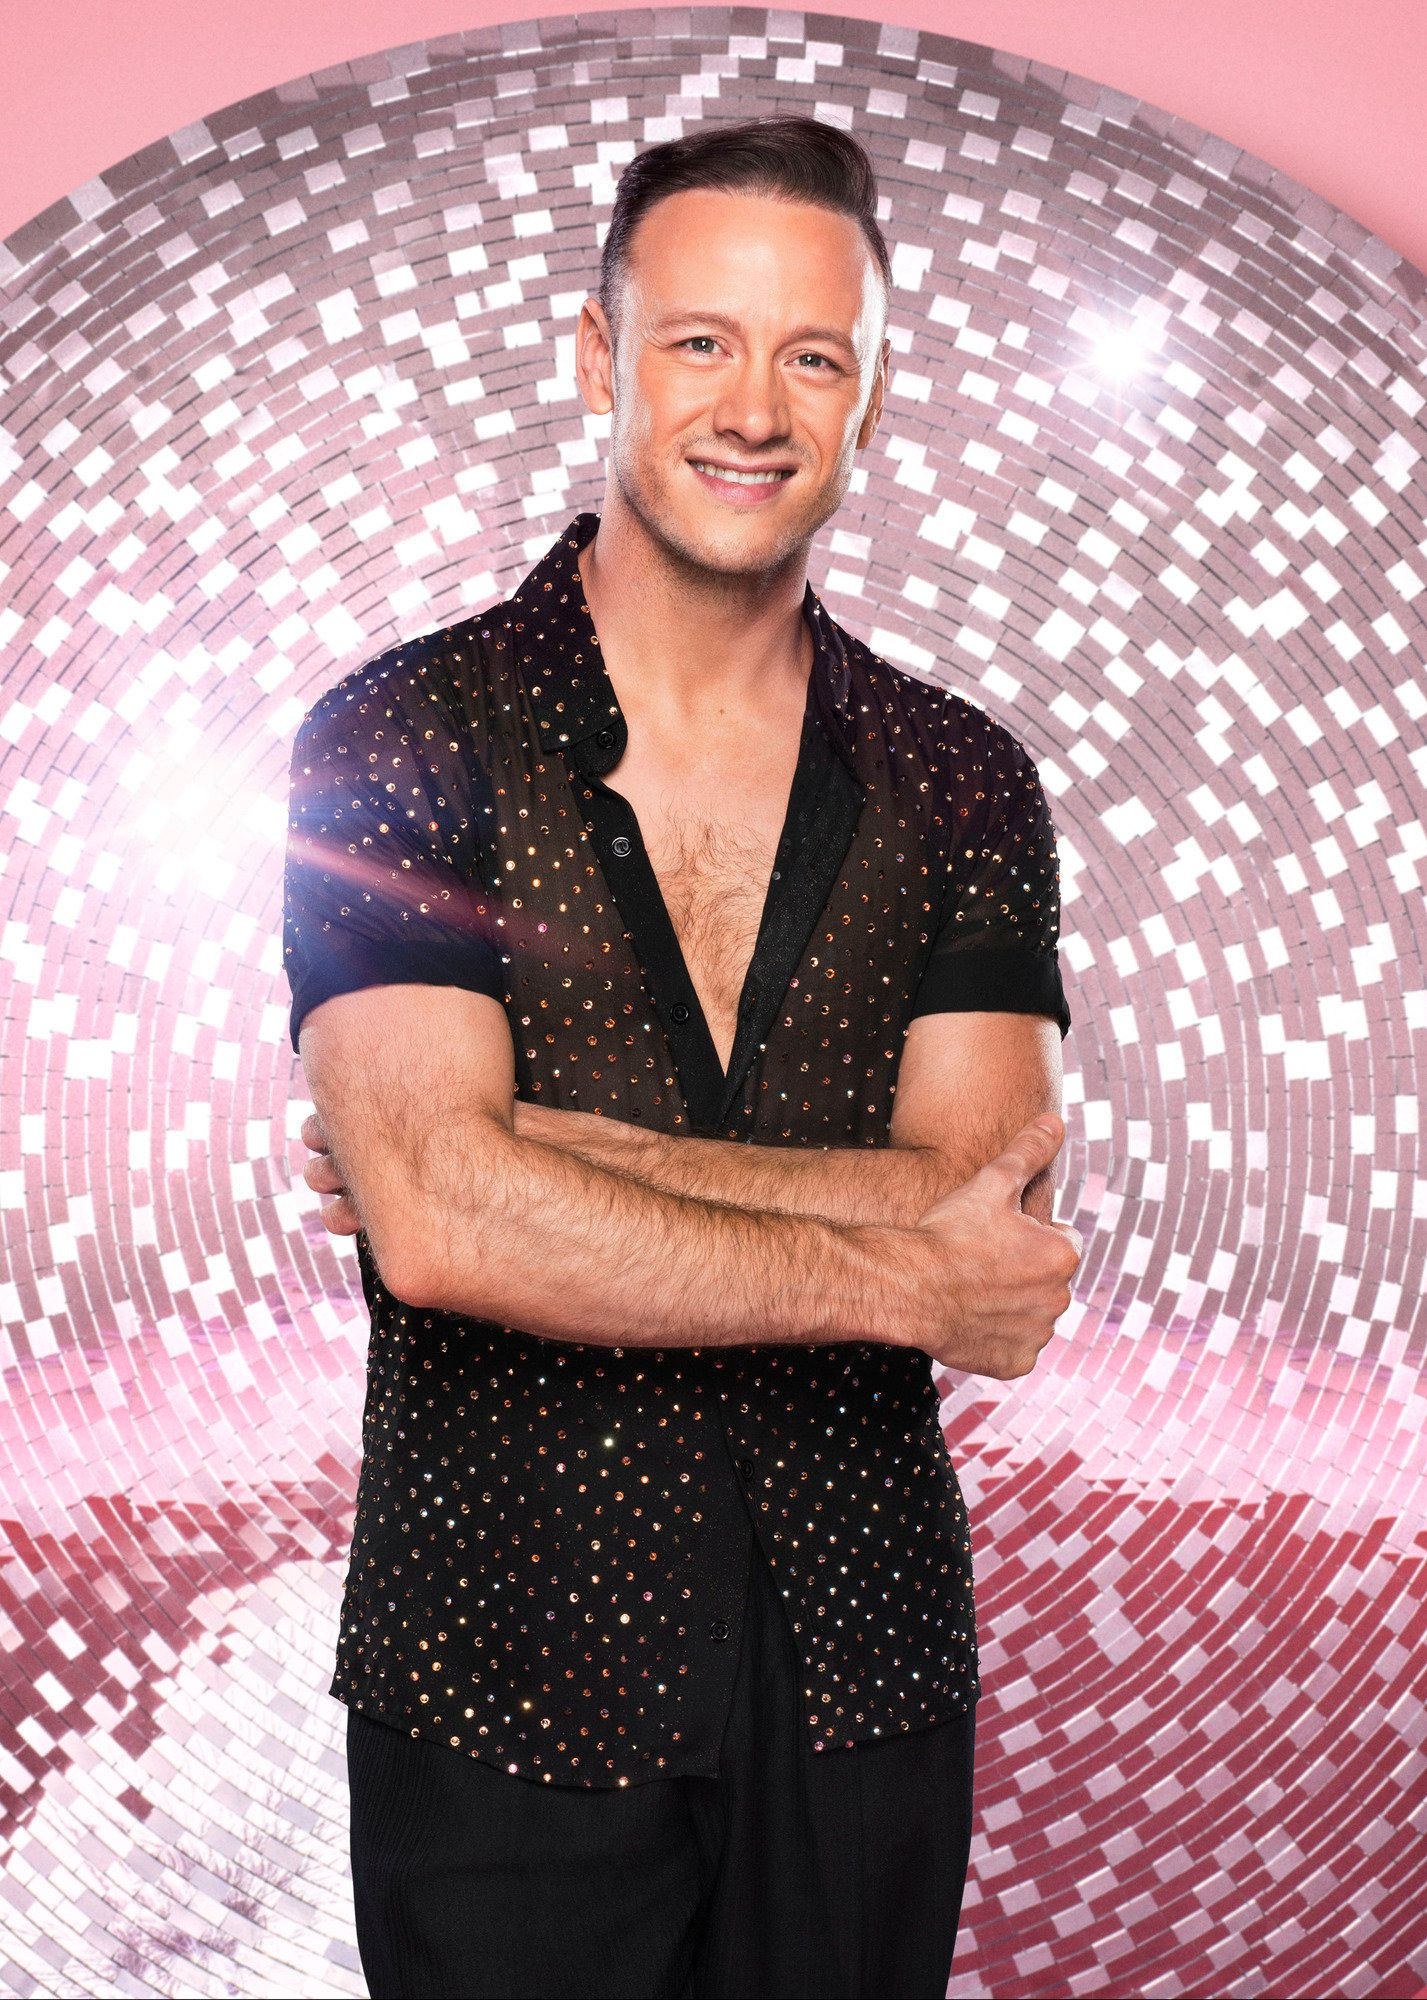 STRICTLY: Pro Kevin Clifton Sets The Record Straight Over Rumours He's Planning To